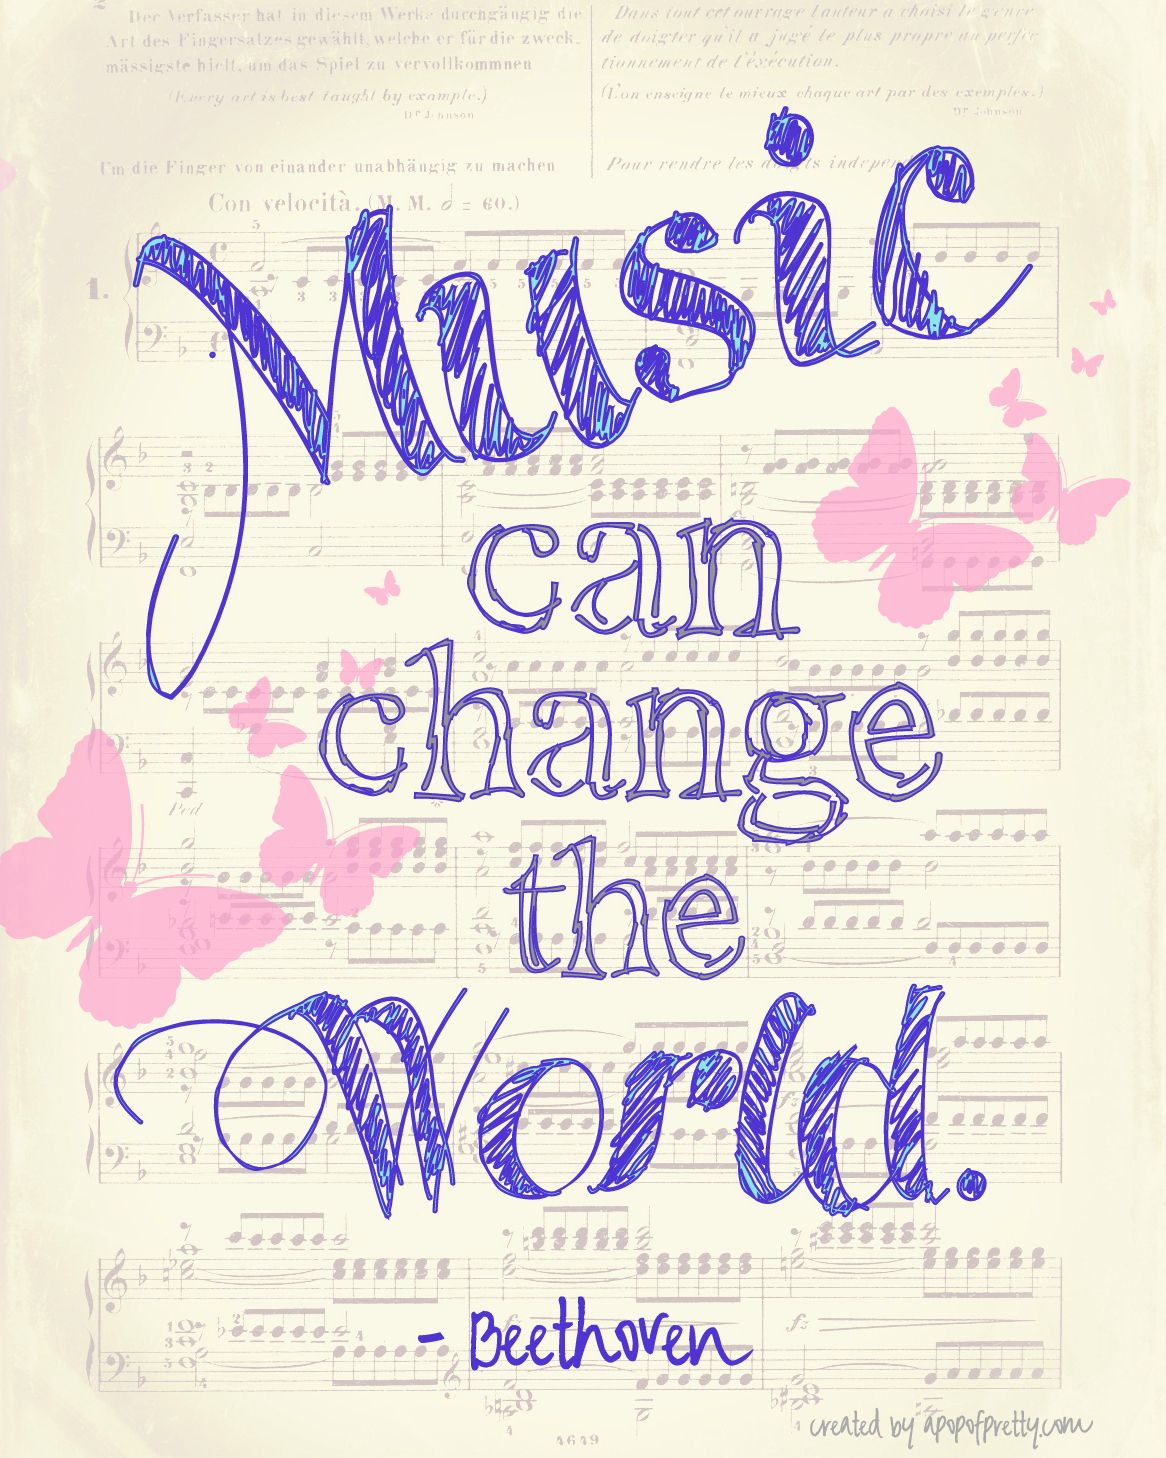 music can change the world a printable dr who so true music can change the world apopofprettydotcom printable i have always believed this